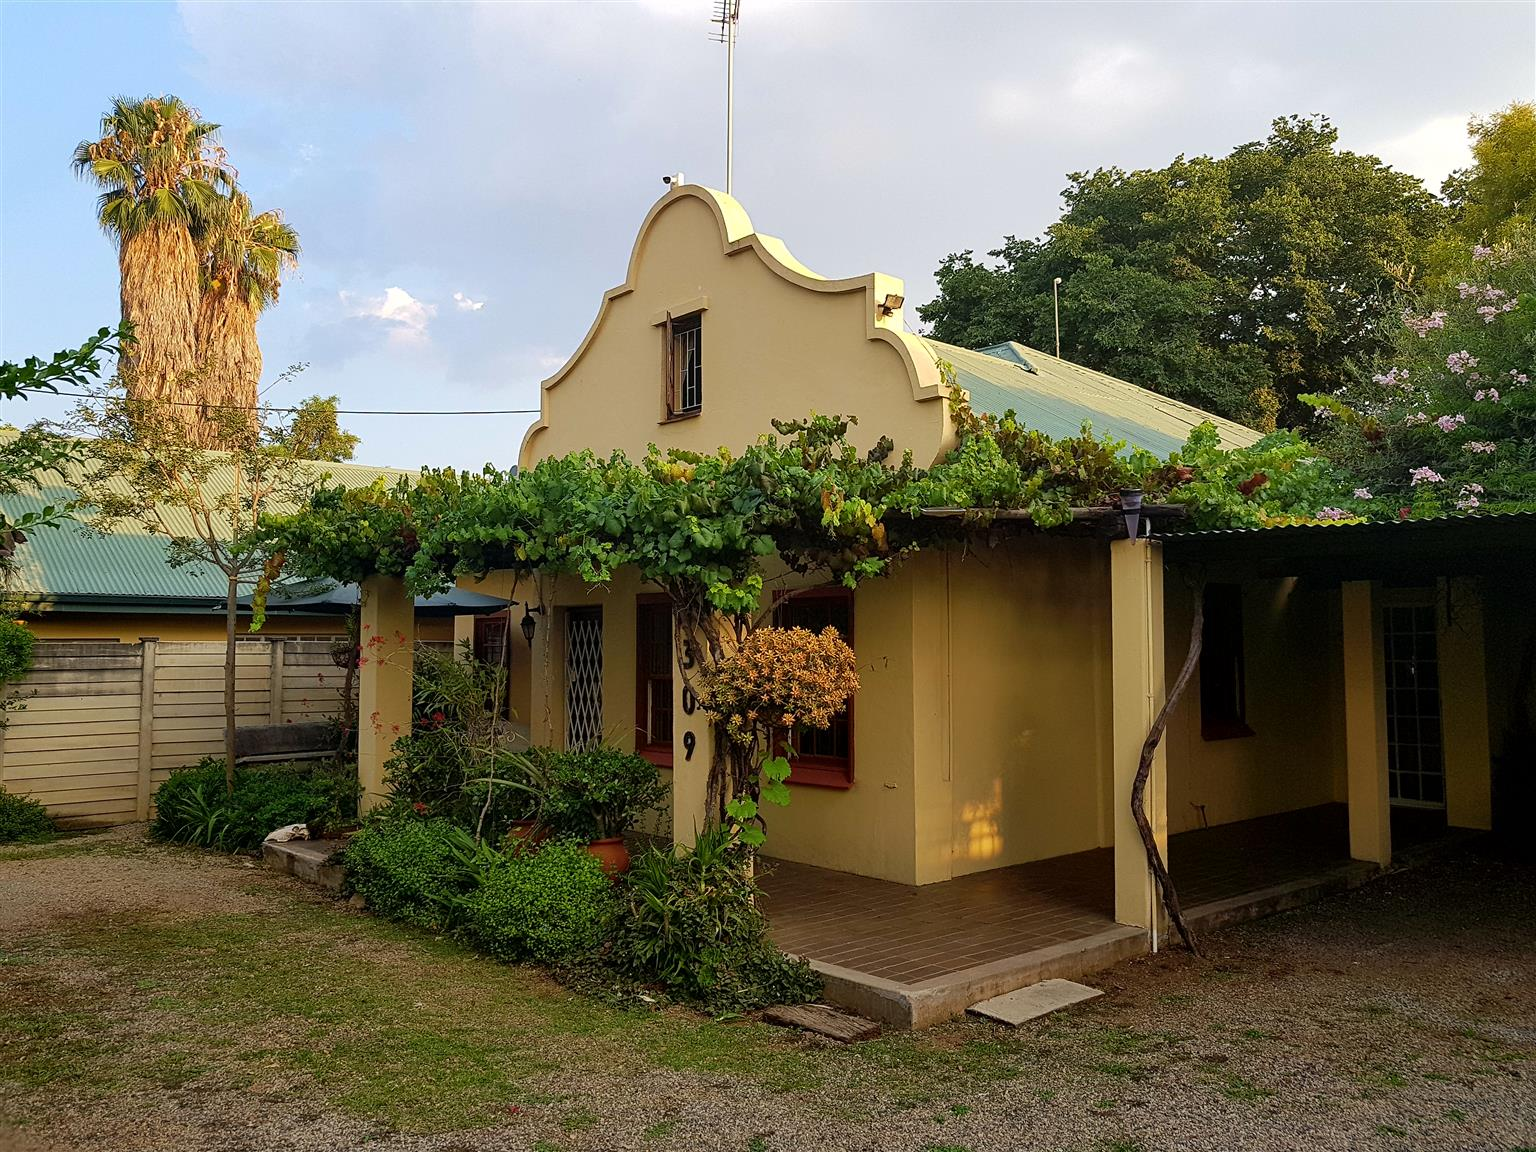 2 Houses and a Garden Cottage for sale in Hatfield near University of Pretoria.